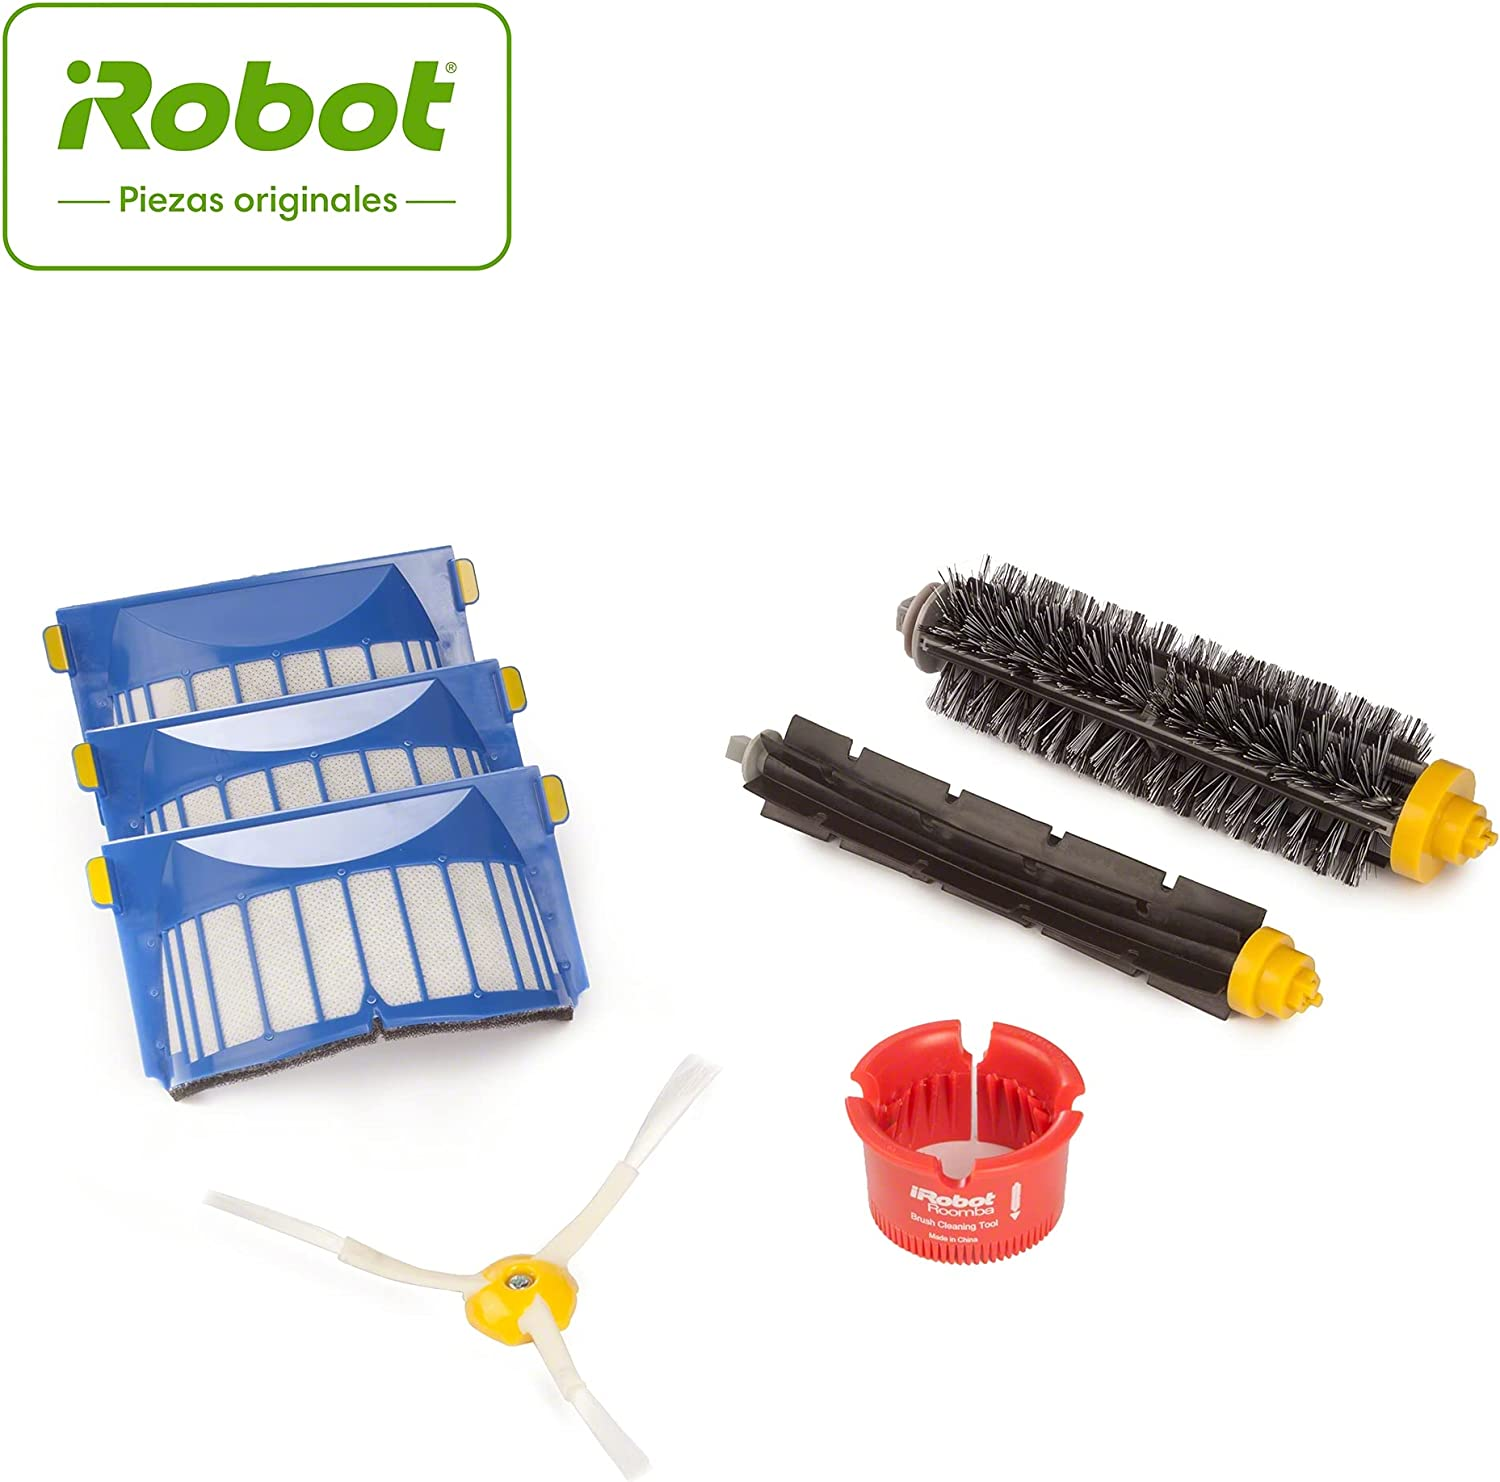 Replacement Parts Kit For iRobot Roomba 600 Series 610 620 650 Vacuum Cleaner US